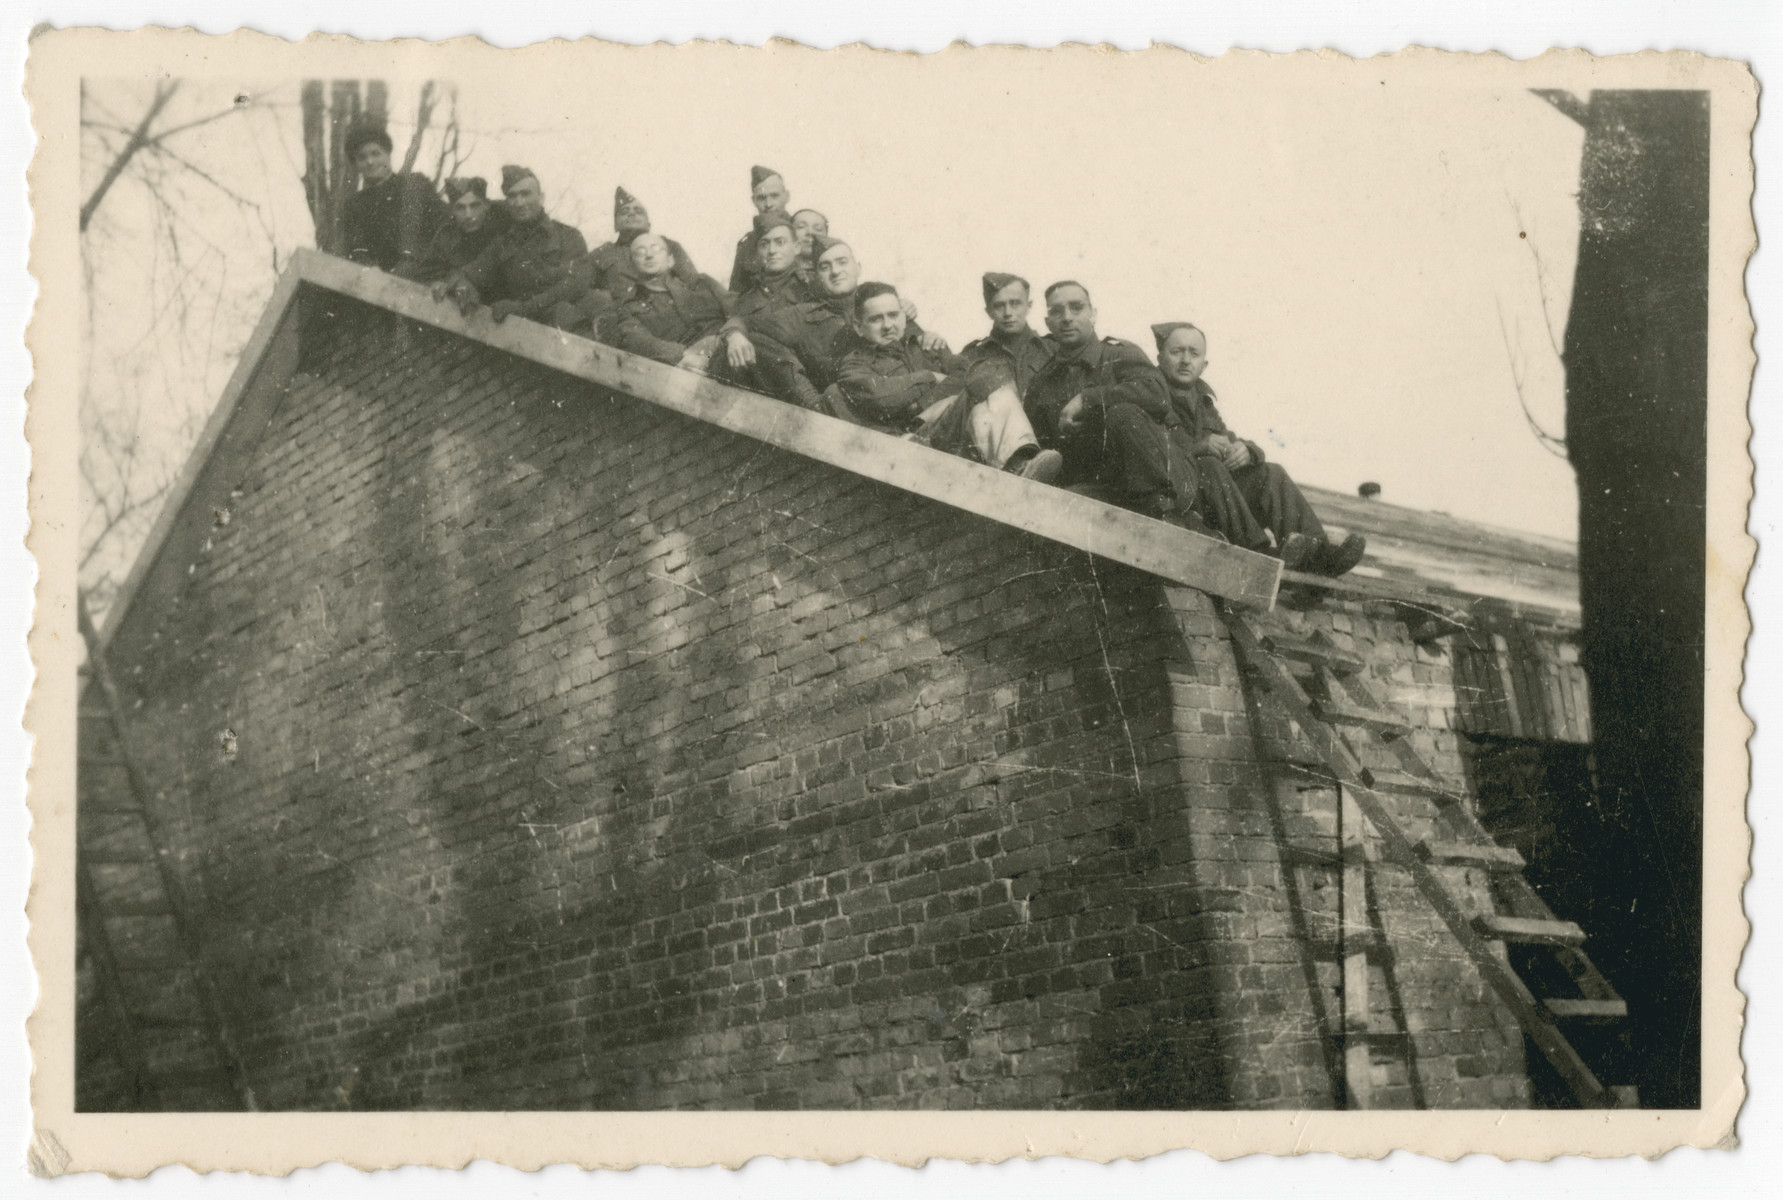 British POWs in Stalag IV A, Elsterhorst pose on the roof of a brick barrack.  Among those pictured is Erich de-Beer, a Germany Jew who immigrated illegally to Palesline and joined the British army.